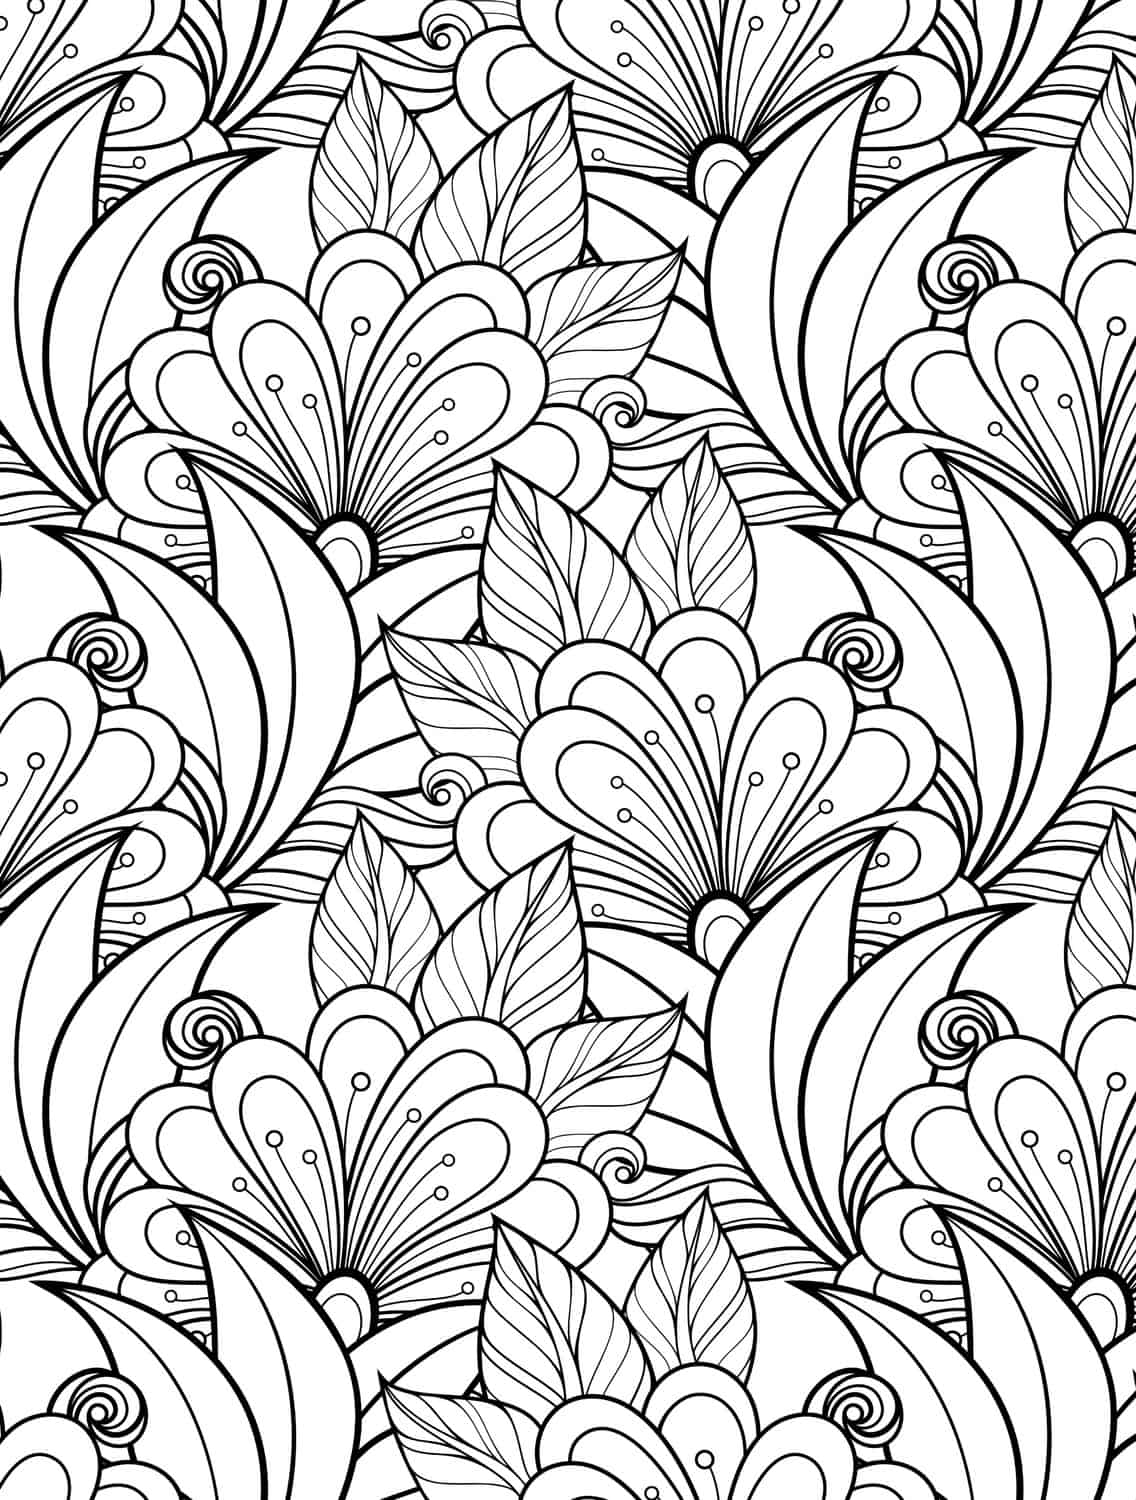 Colouring Pages To Print For Free : More free printable adult coloring pages page of